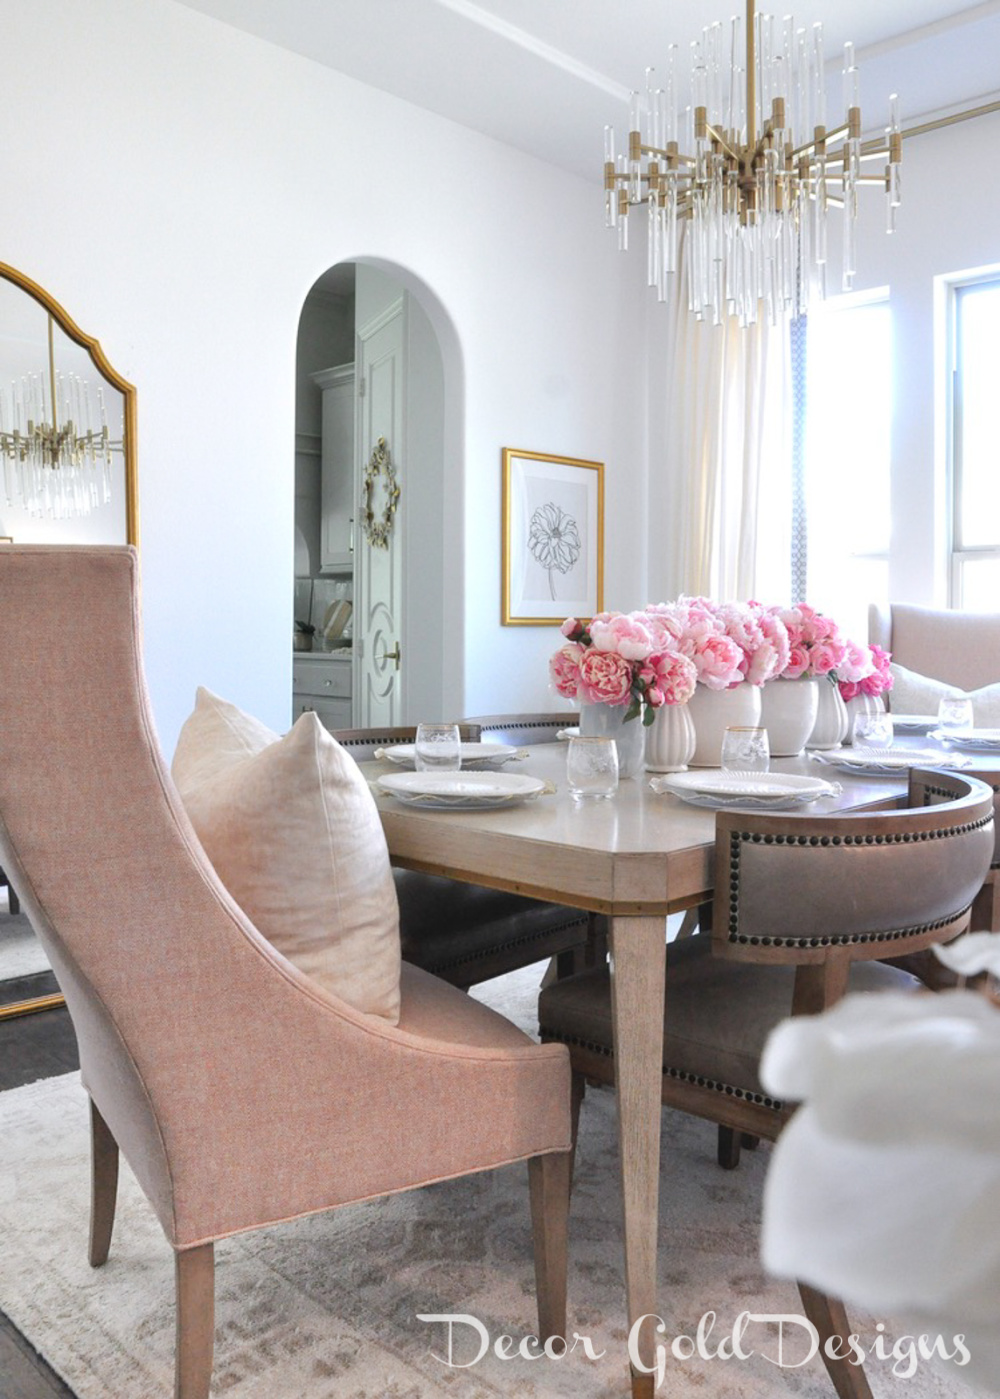 Spring home tour beautiful dining room elegant table blush end chair